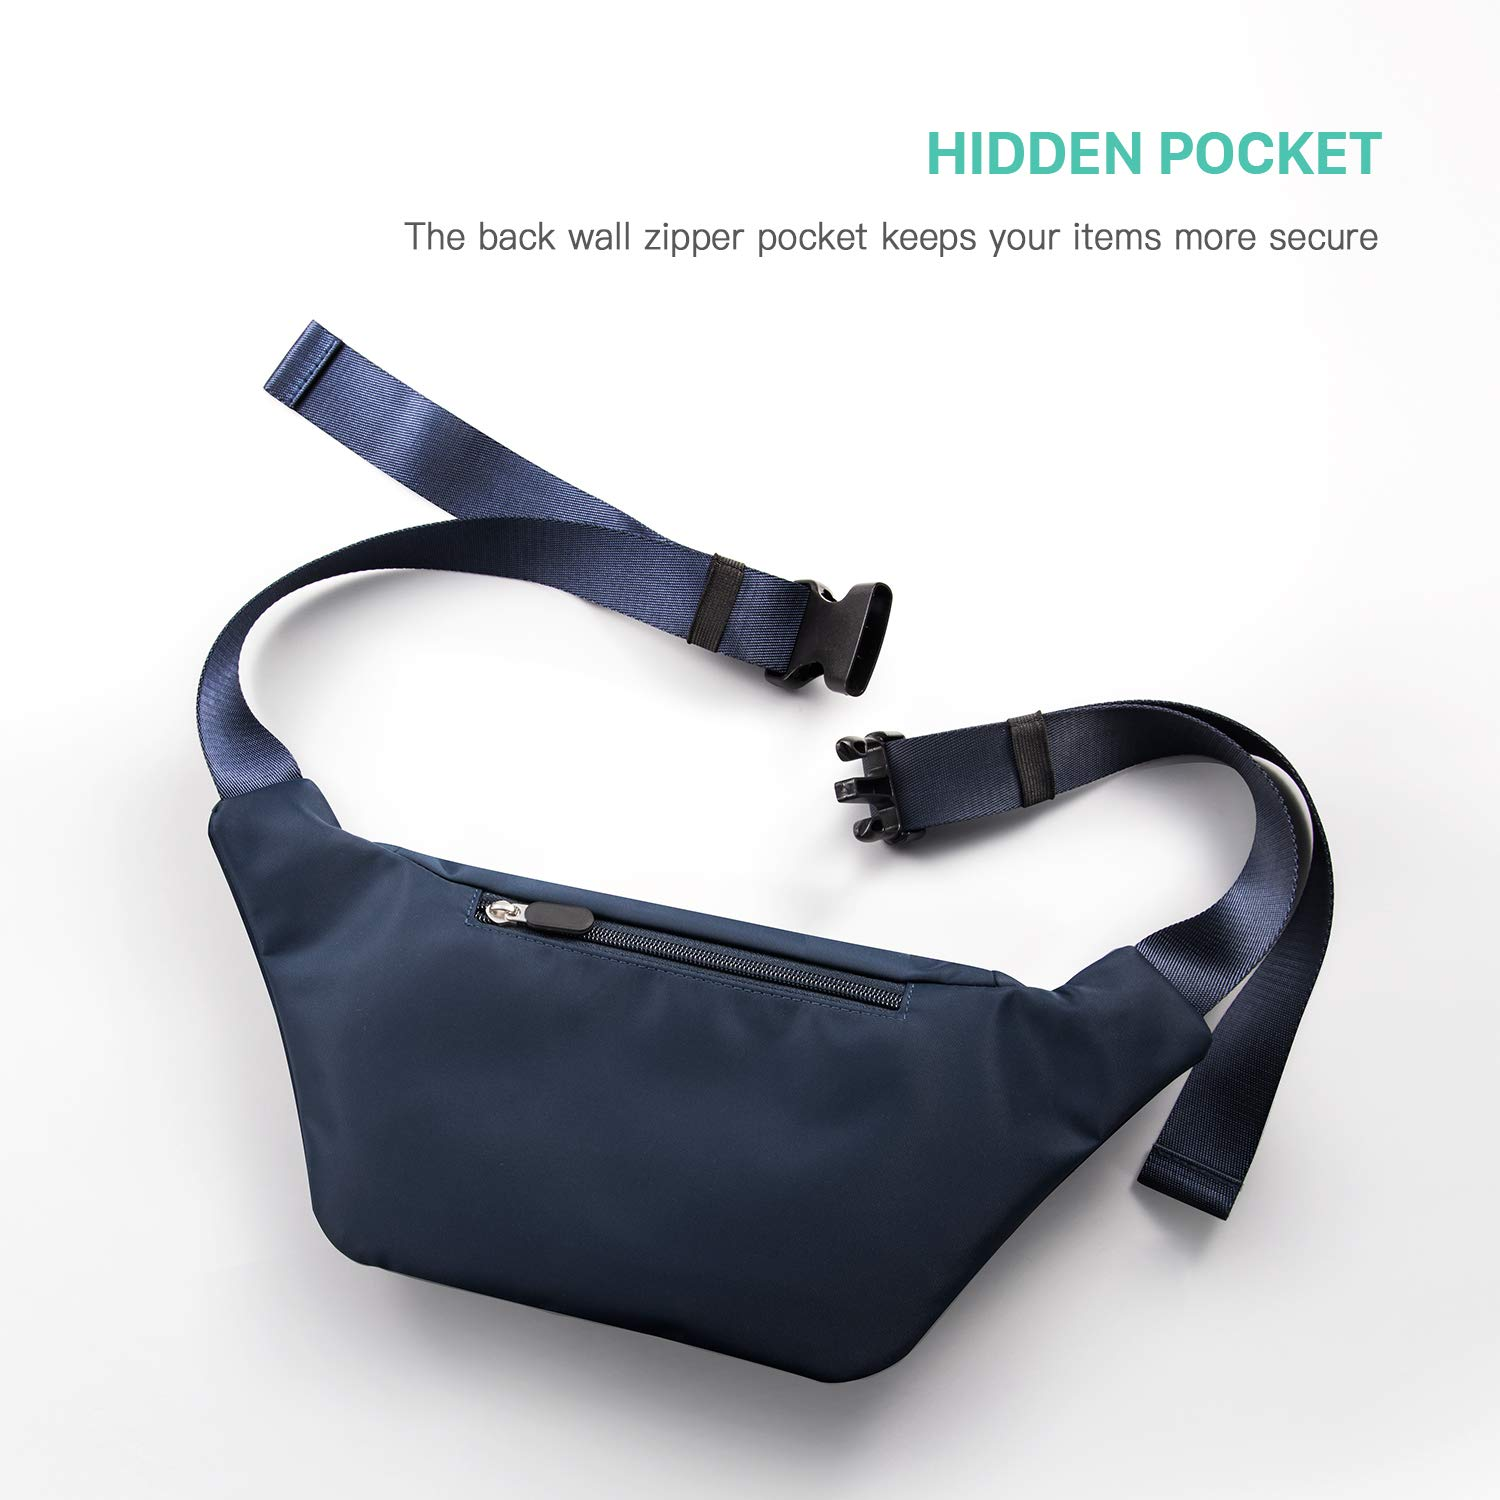 268e0482b860 FREETOO Fanny Pack Waist Pack for Women,with Large Capacity,Waterproof  Suitable for Shopping,Walking,Travel ...